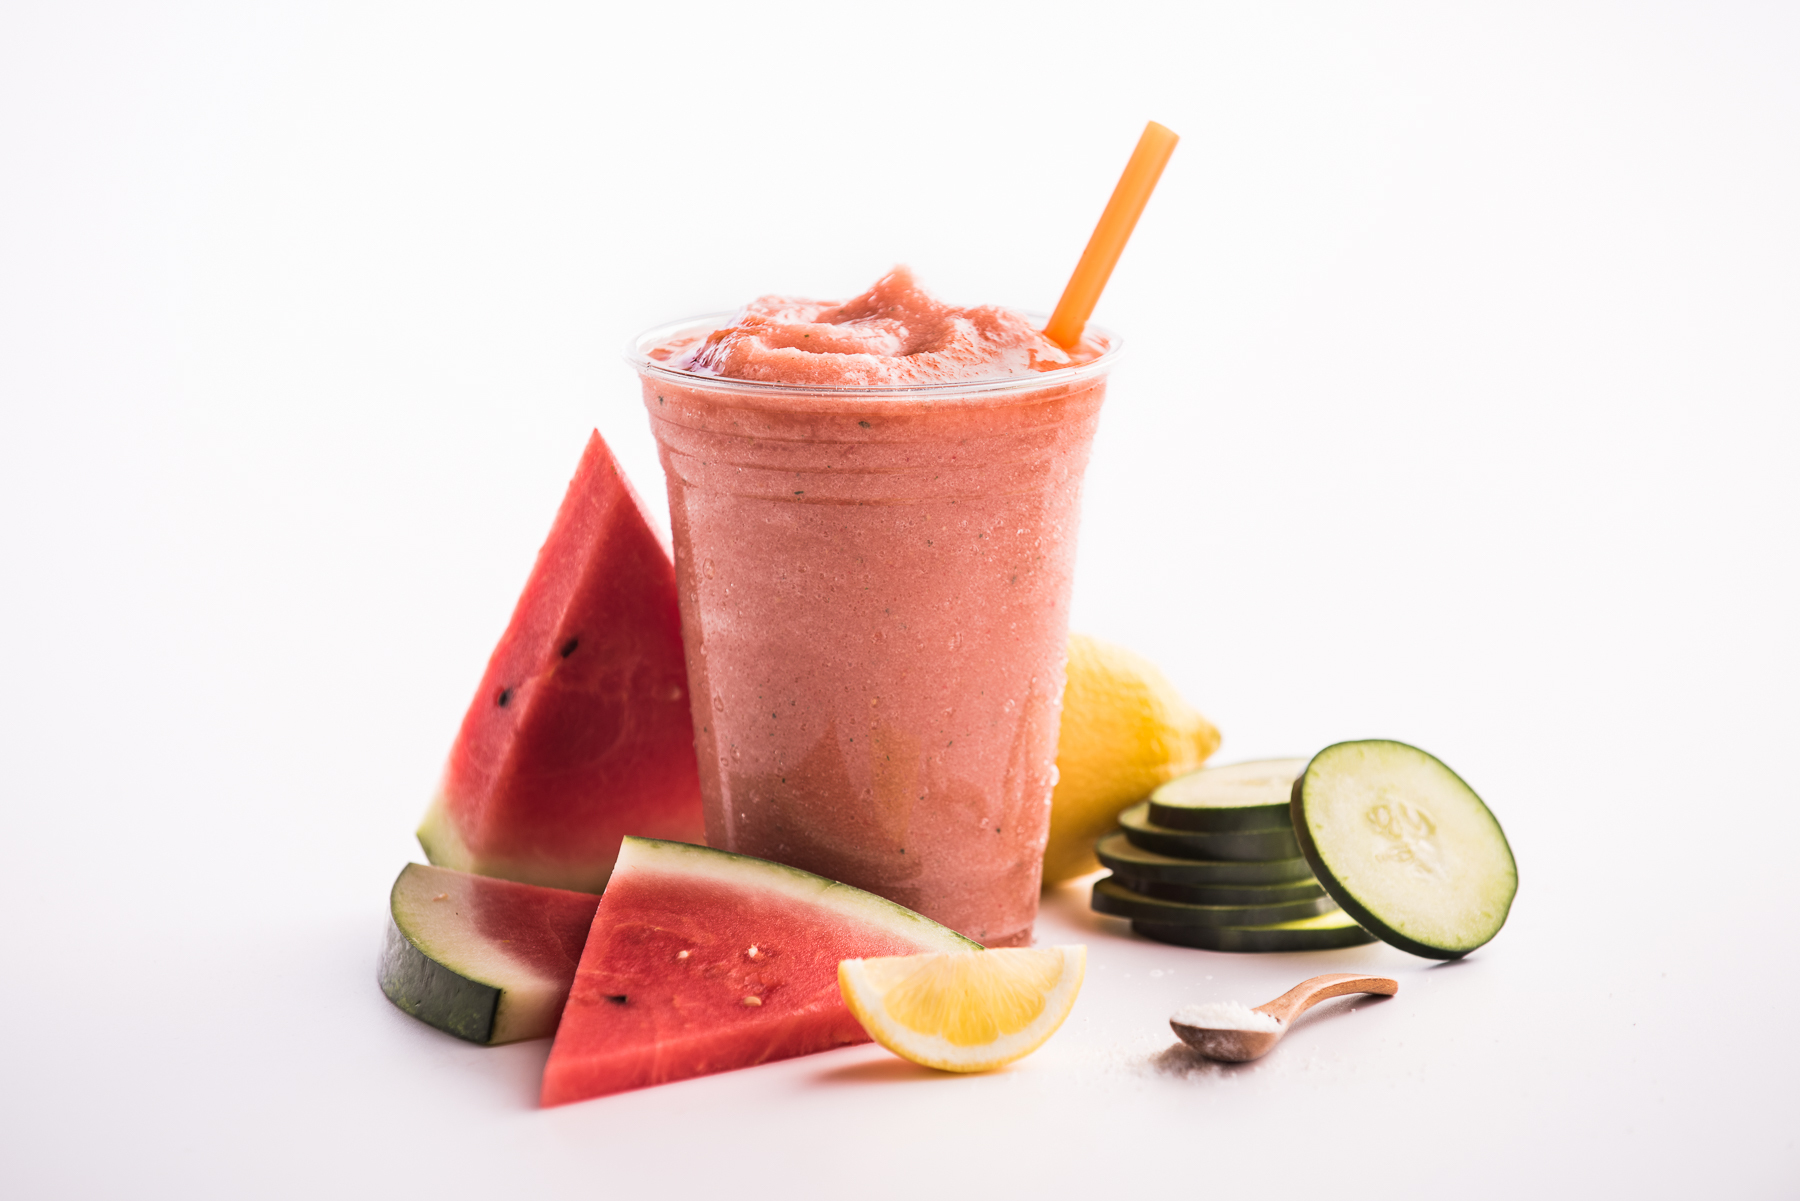 jamba juice debuts innovative summer blends with collagen business wire